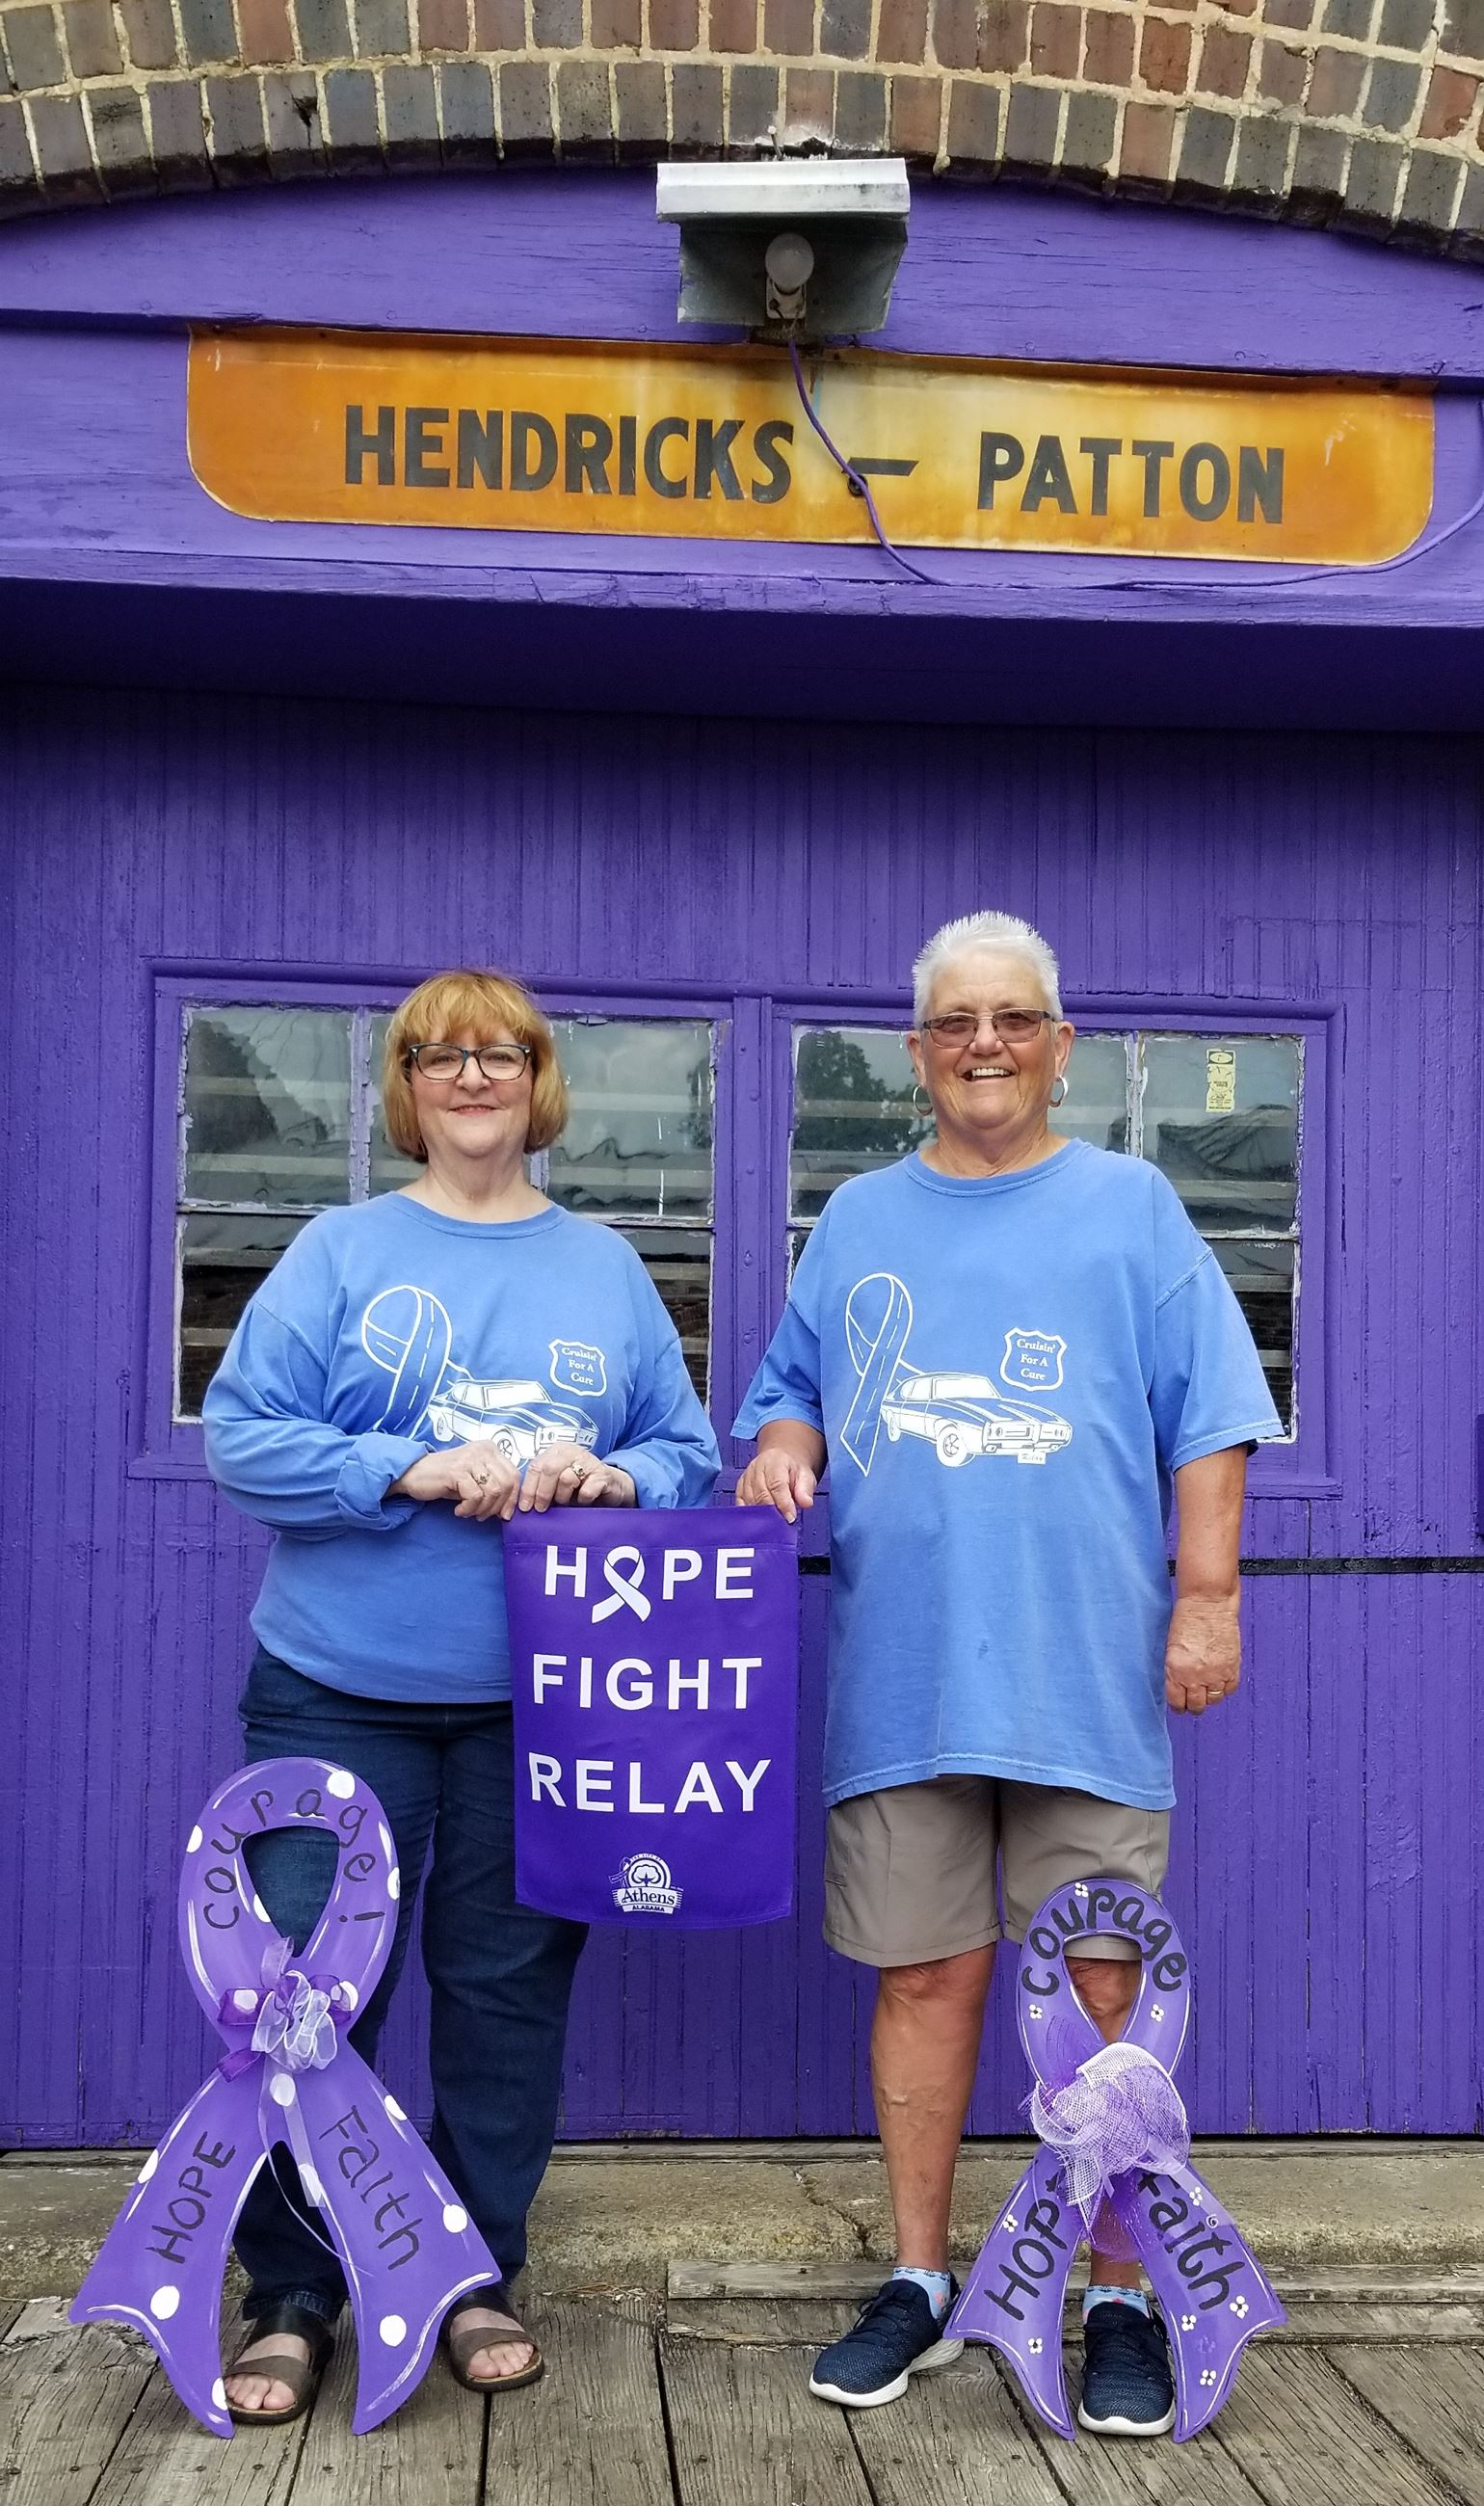 Our Relay Survivors Jennifer White and Kathy Cothren with purple ribbon